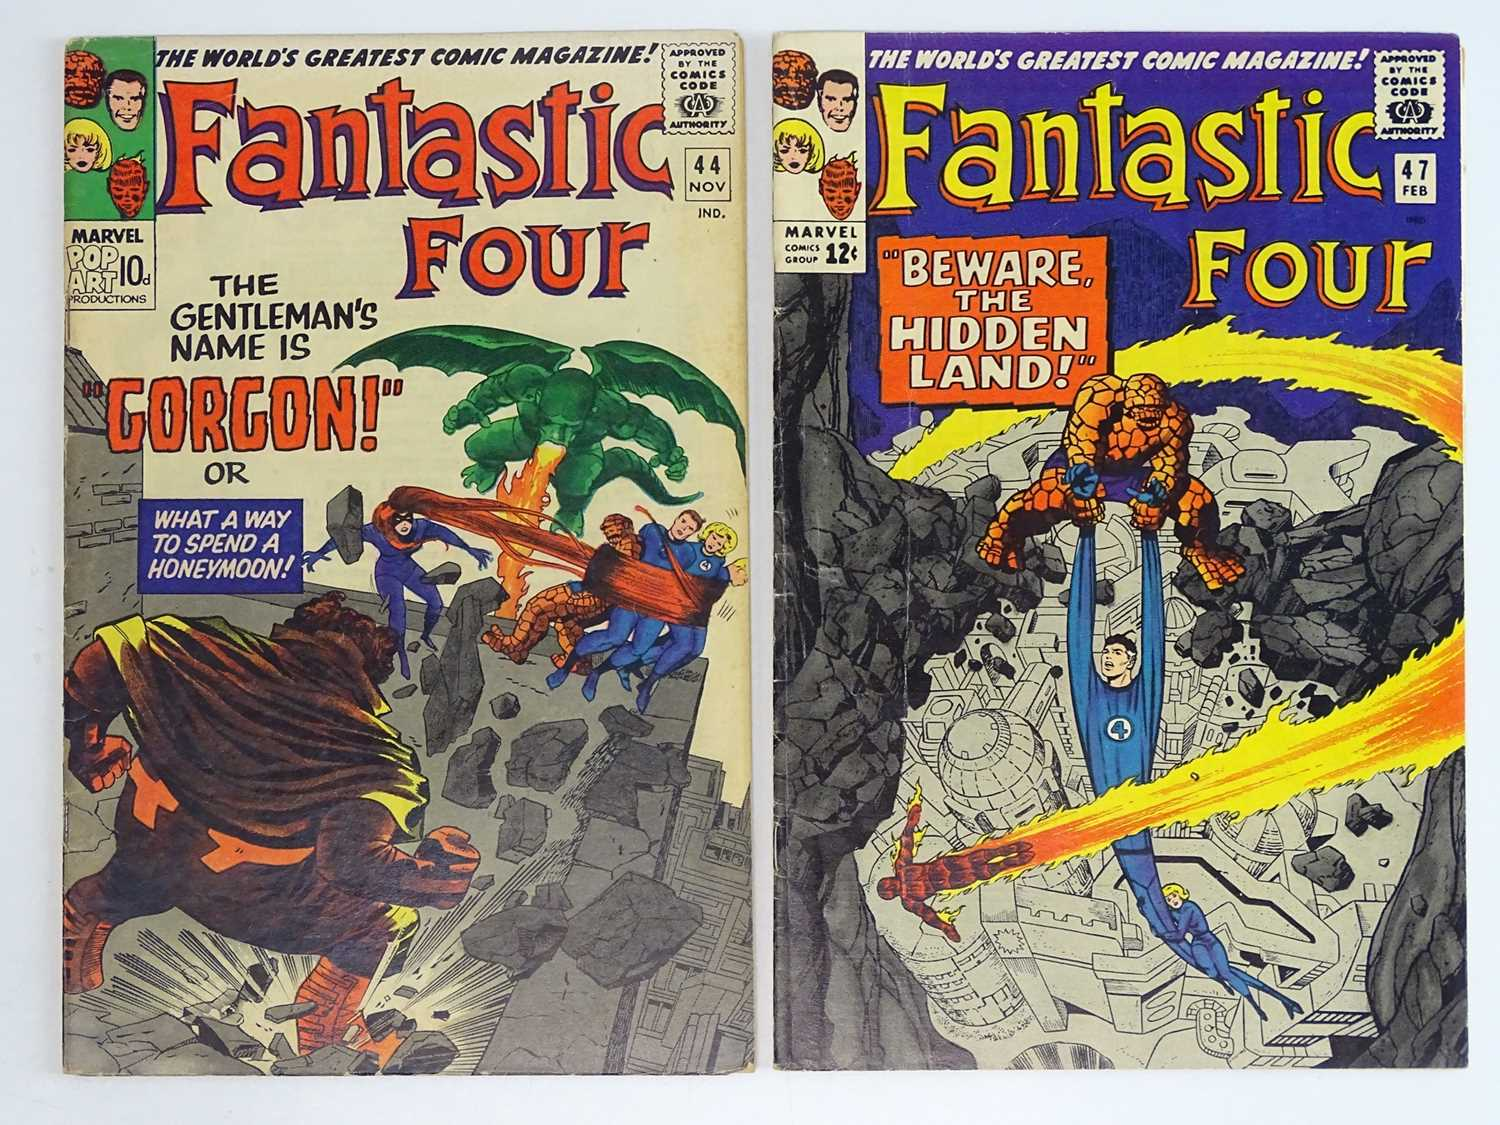 FANTASTIC FOUR #44 & 47 - (2 in Lot) - (1965/66 - MARVEL - US Price & UK Price Variant) - Includes